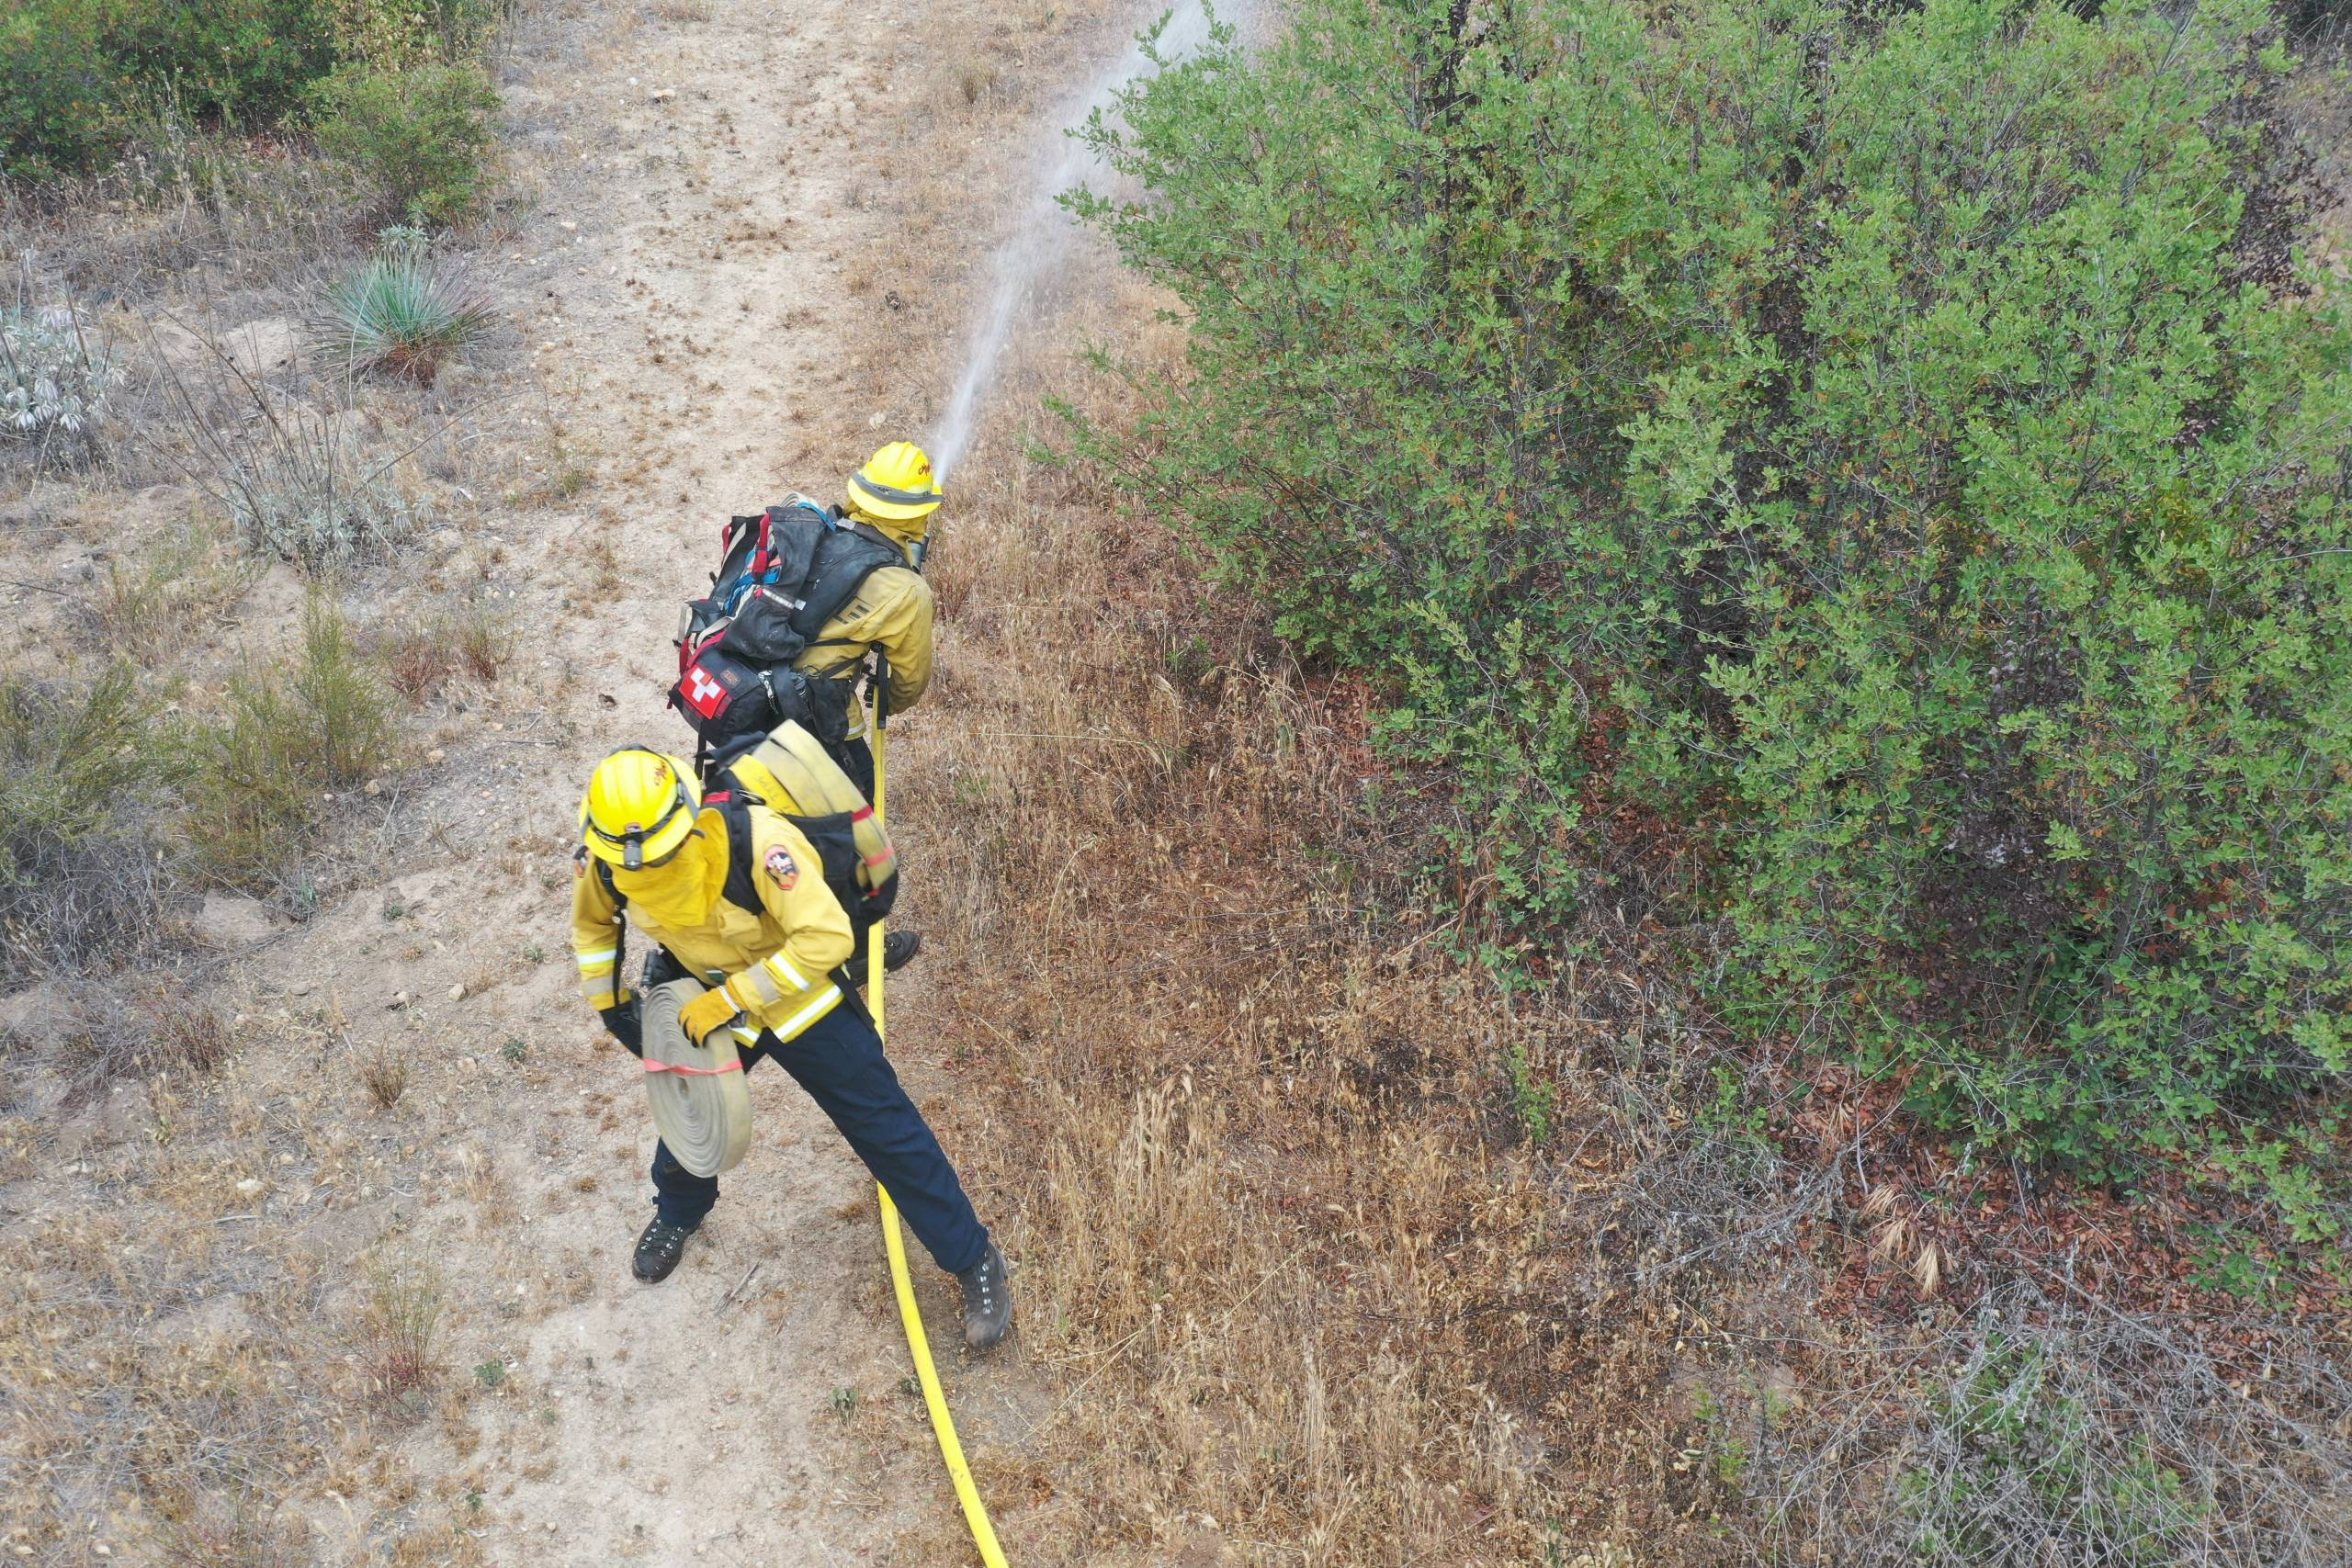 Two firefighters seem to be pulling a long hose through the forest.